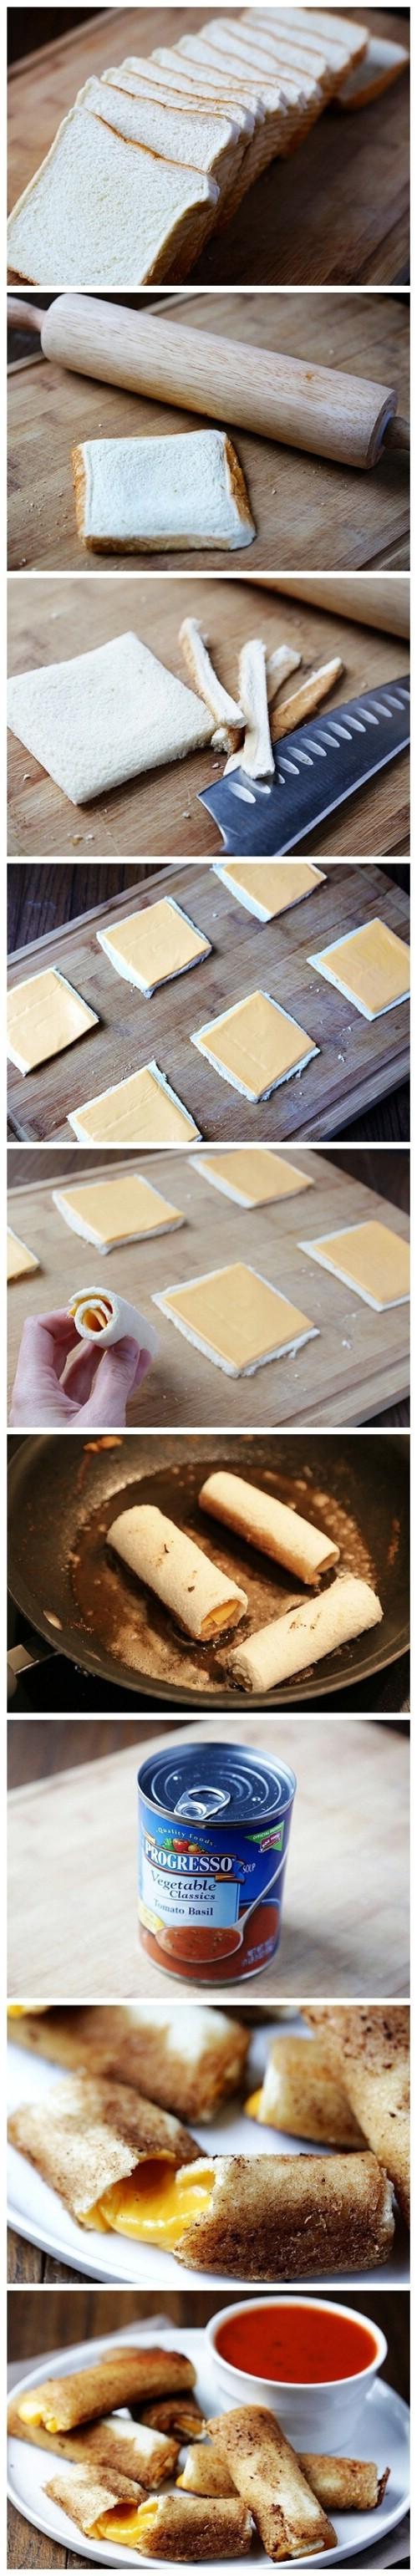 Make incredible cheese bread.